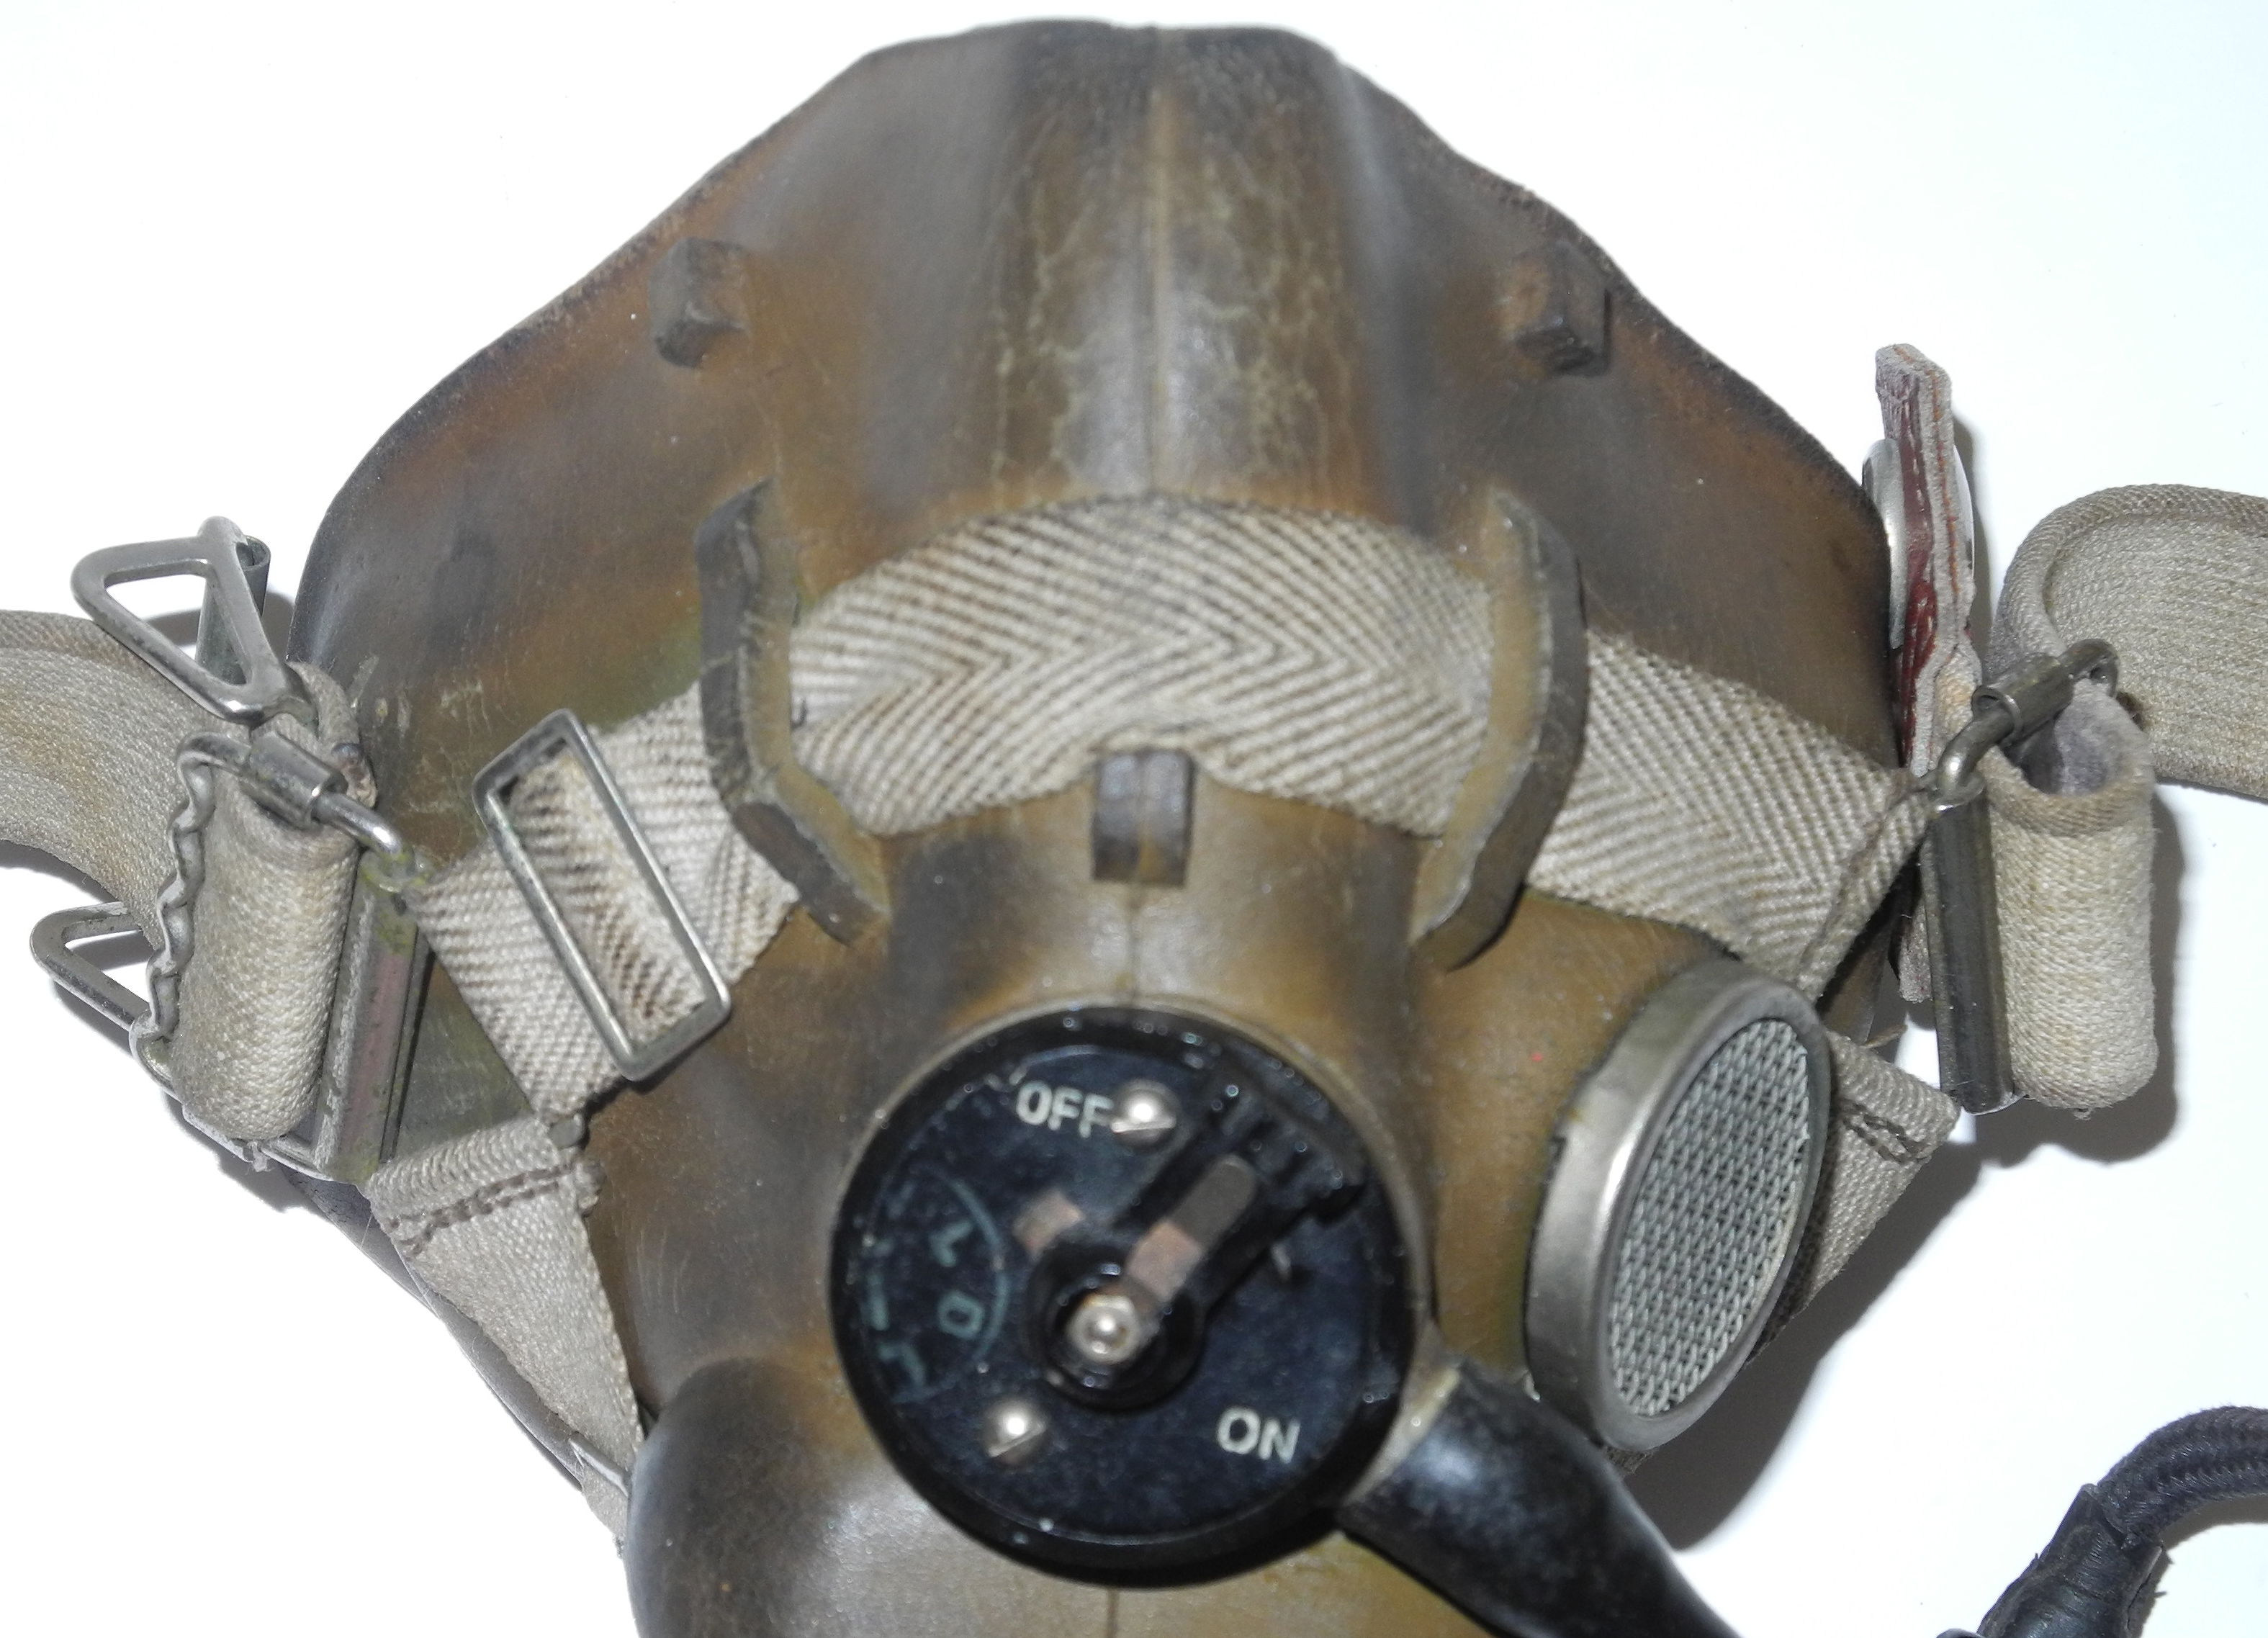 RAF Type H Oxygen Mask dated 1955